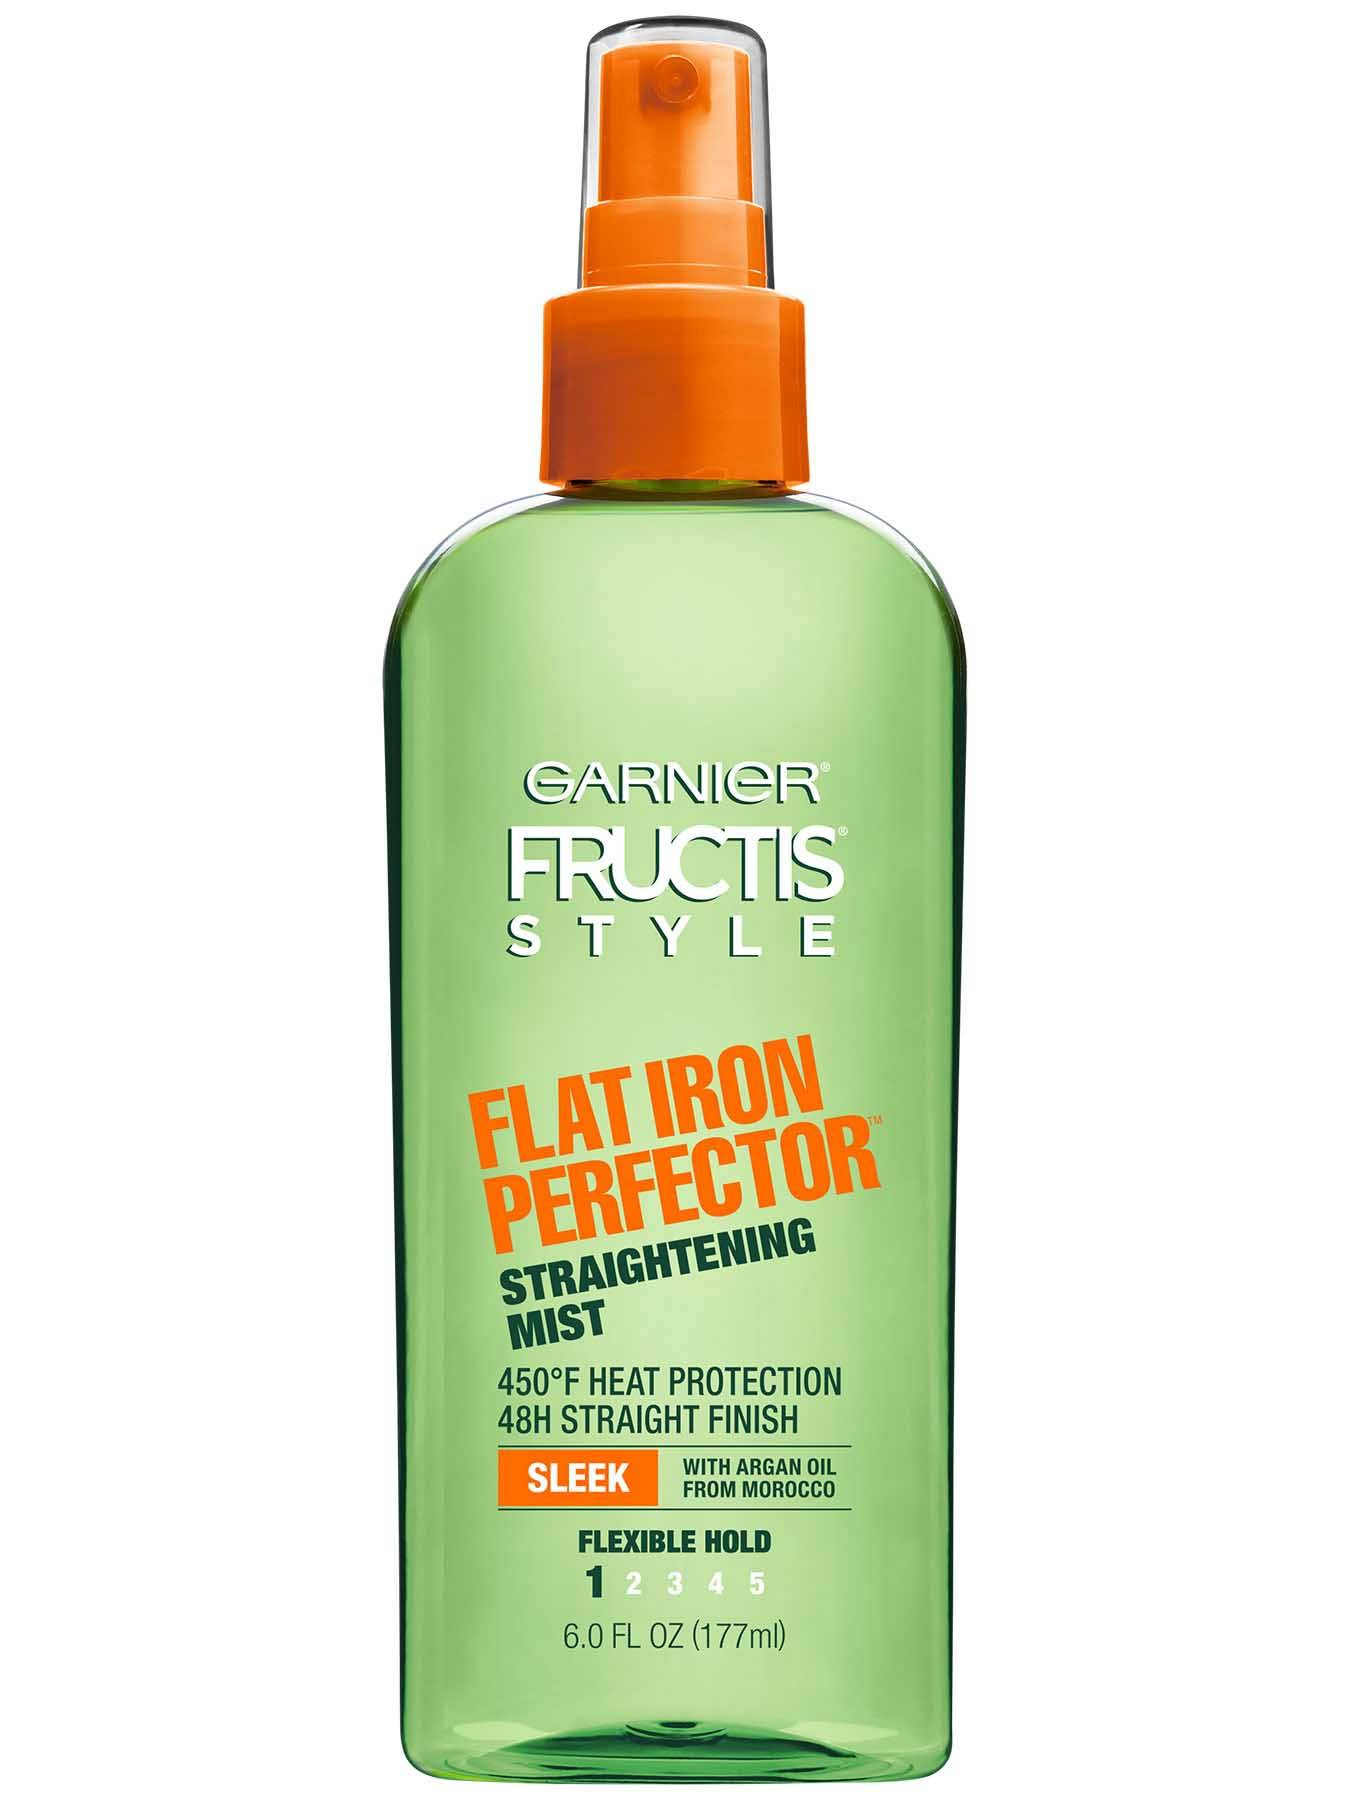 Front view of Flat Iron Perfector Straightening Mist.